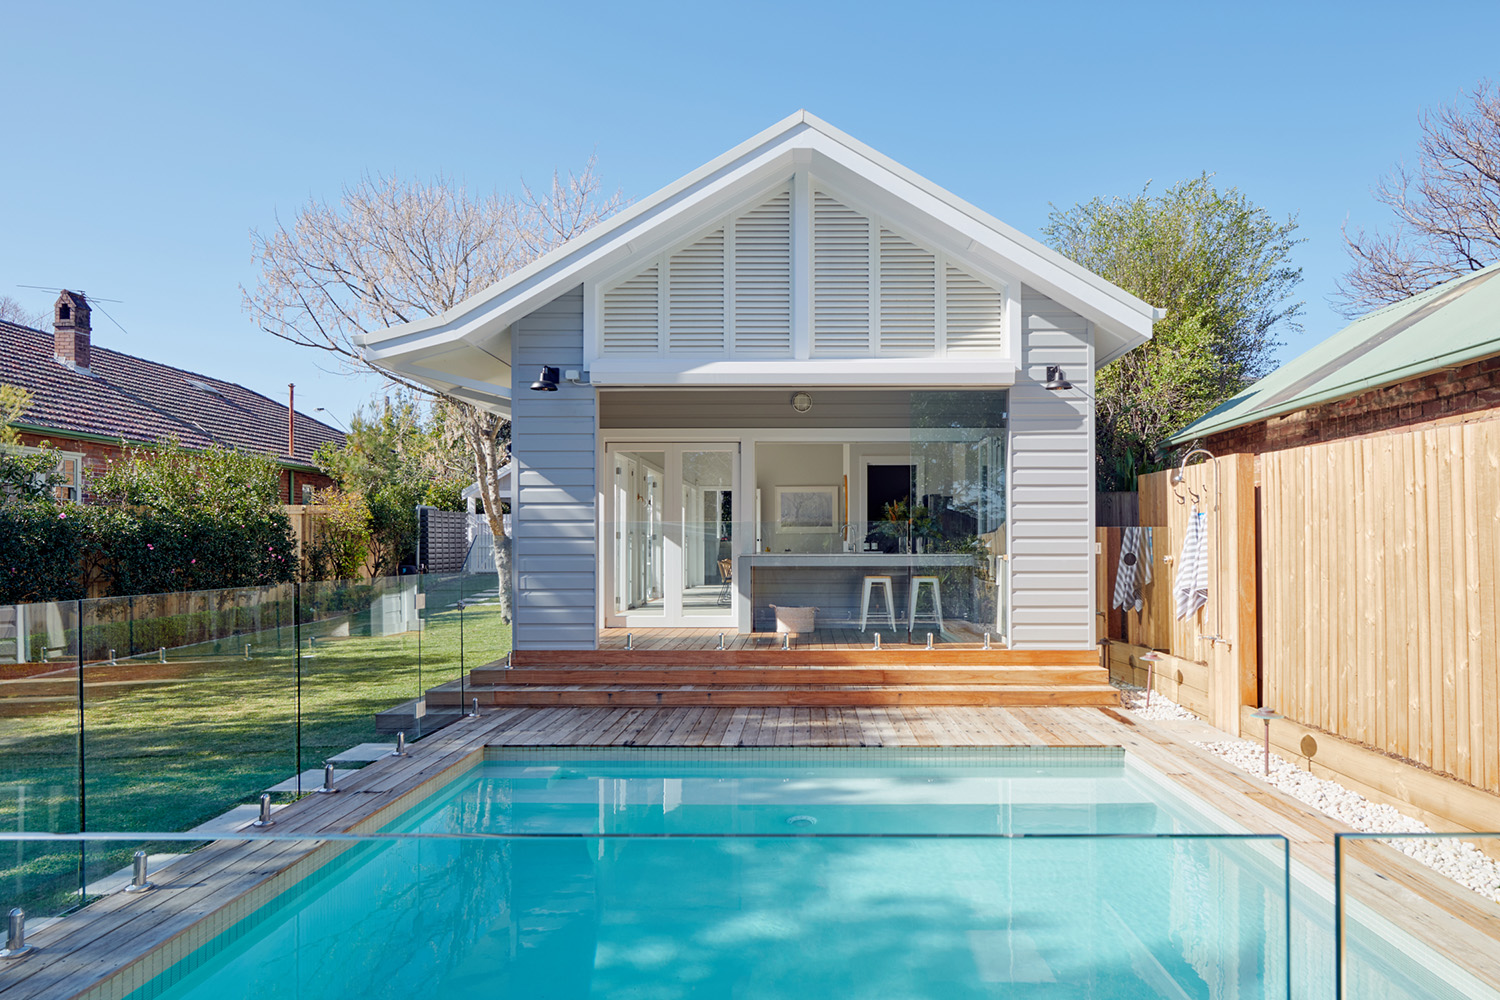 Home Swimming Pool with Timber Deck and Weatherboard